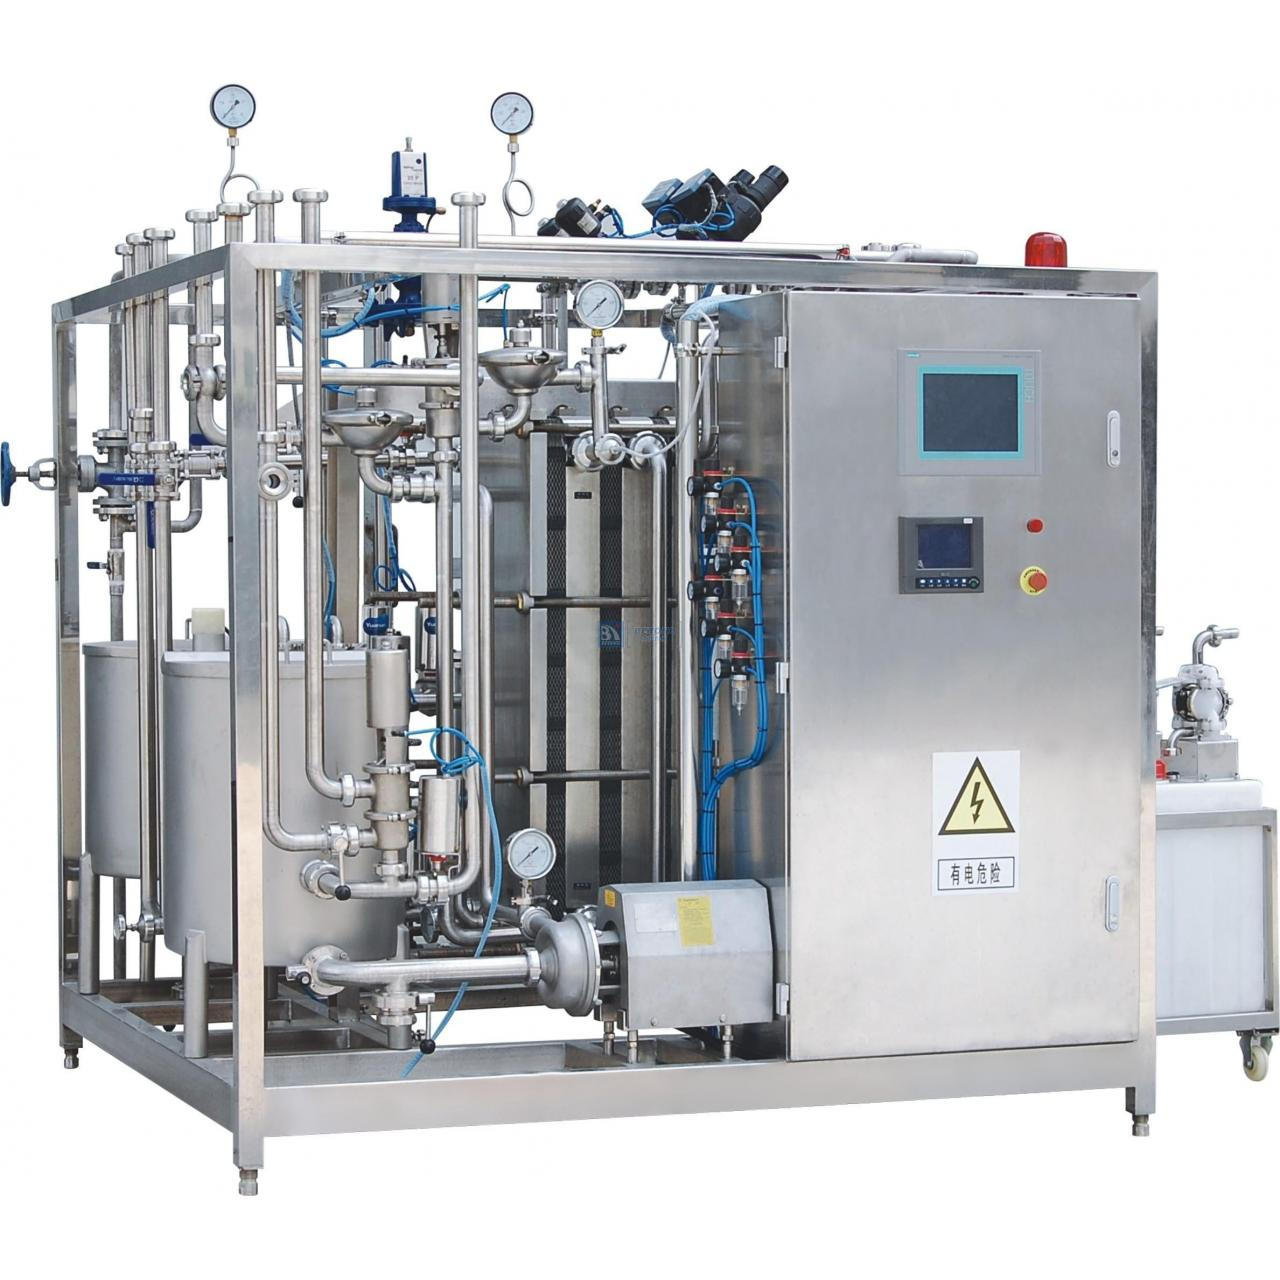 High quality plate type UHT sterilizer for milk or beverage Manufactures